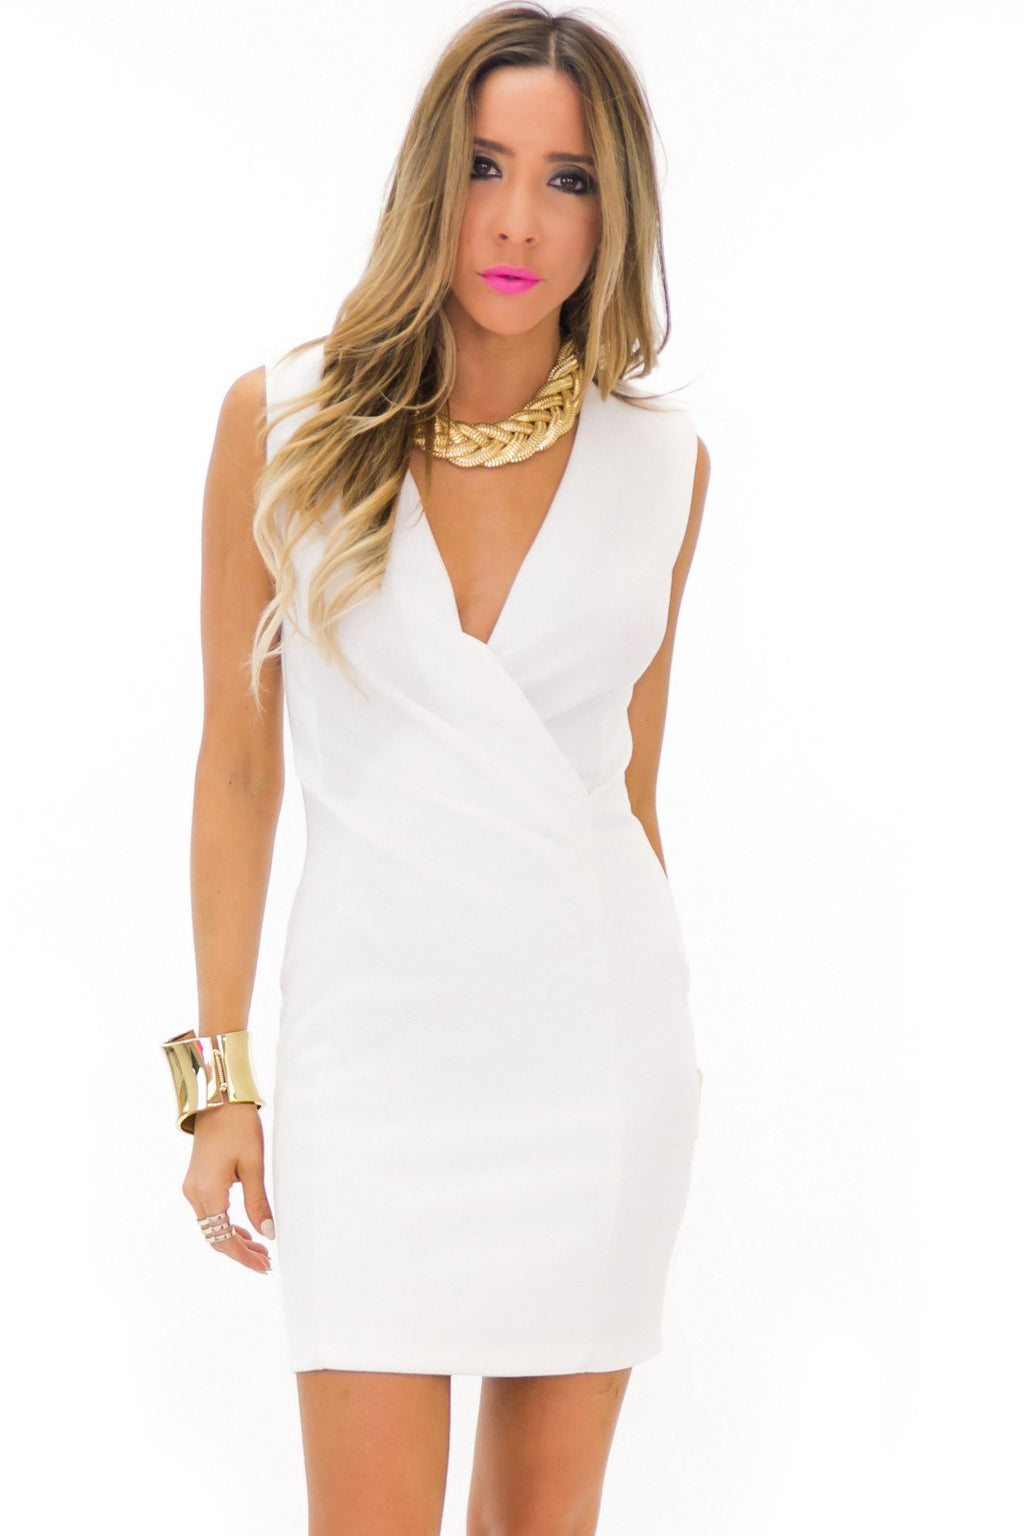 FRANCI SLEEVELESS DEEP-V DRESS - White - Haute & Rebellious